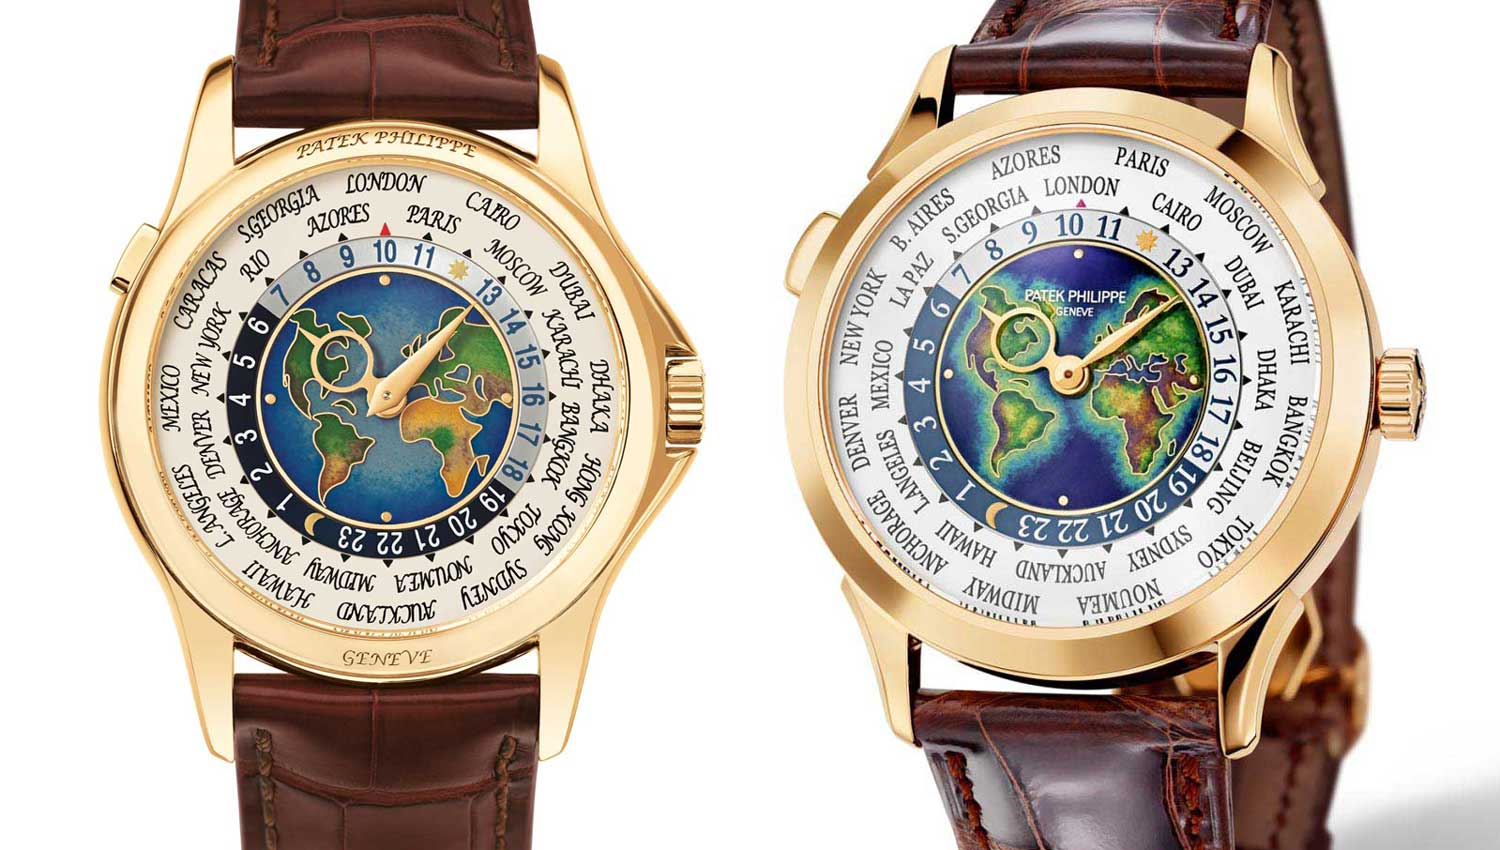 The Patek Philippe signature on the ref. 5231 (right) is painted onto the enamel surface, whereas in the previous ref. 5131 (left) the signature had been engraved onto the bezel, which was somewhat controversially received. The 5231 also has a larger flat bezel along with faceted lugs that are reminiscent of the 2523.